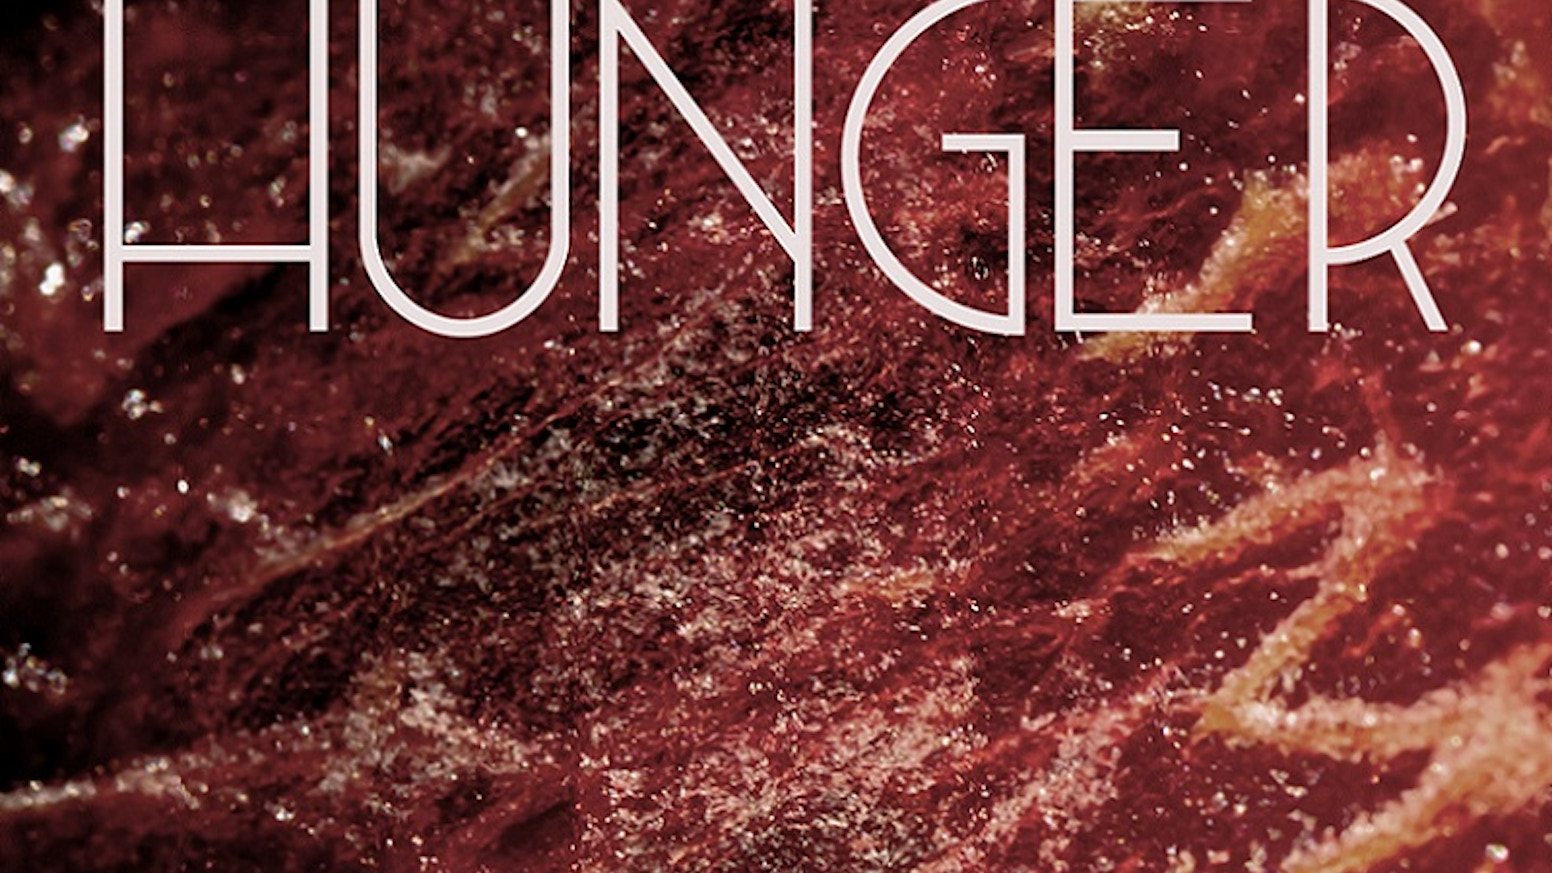 Hunger: A horror short about a cannibal family by Usman